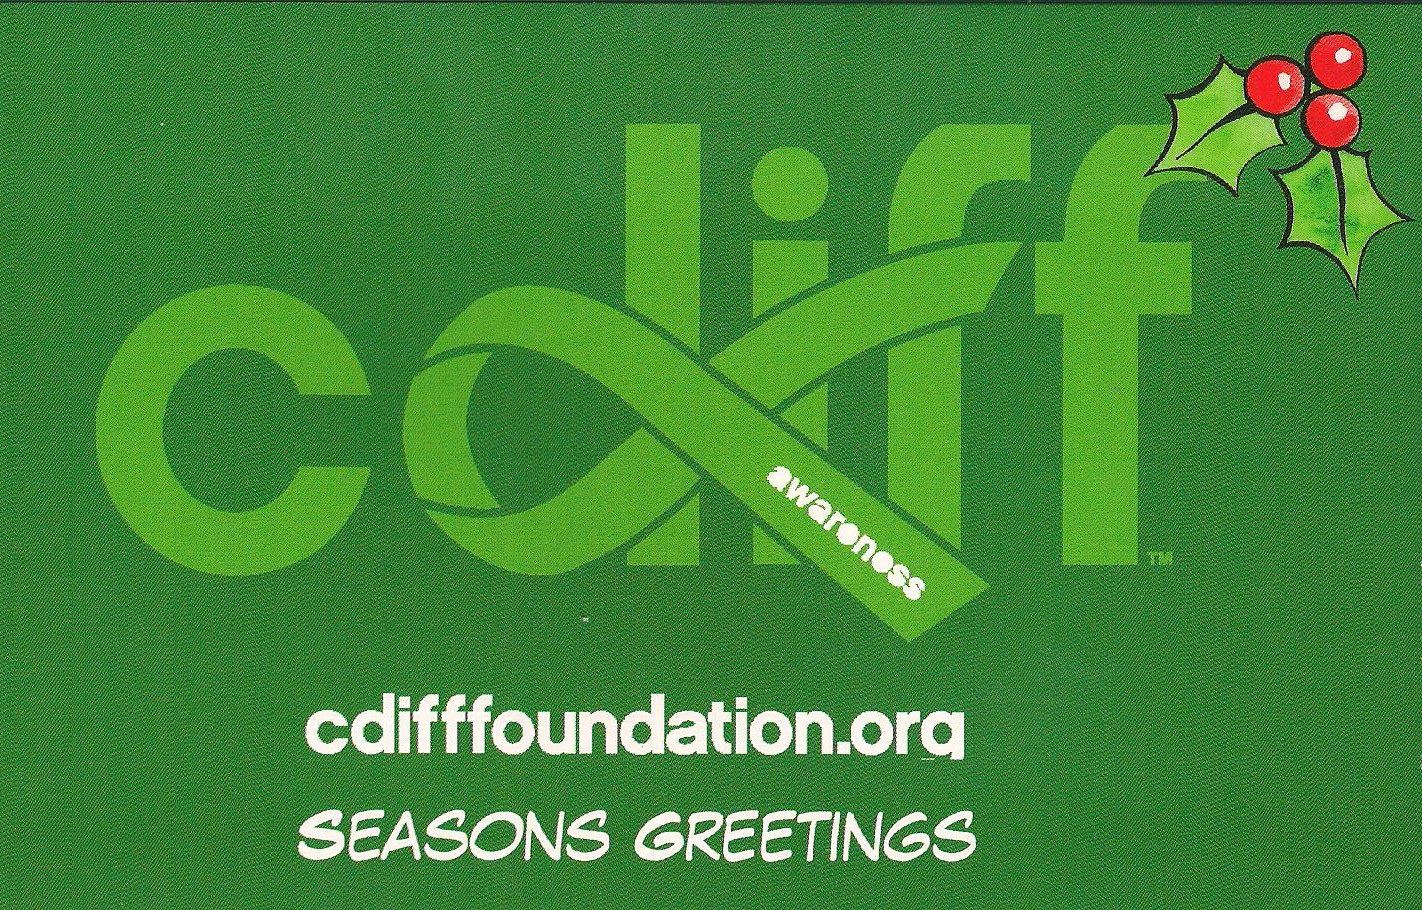 Seasons greetings from the c diff foundation c diff foundation m4hsunfo